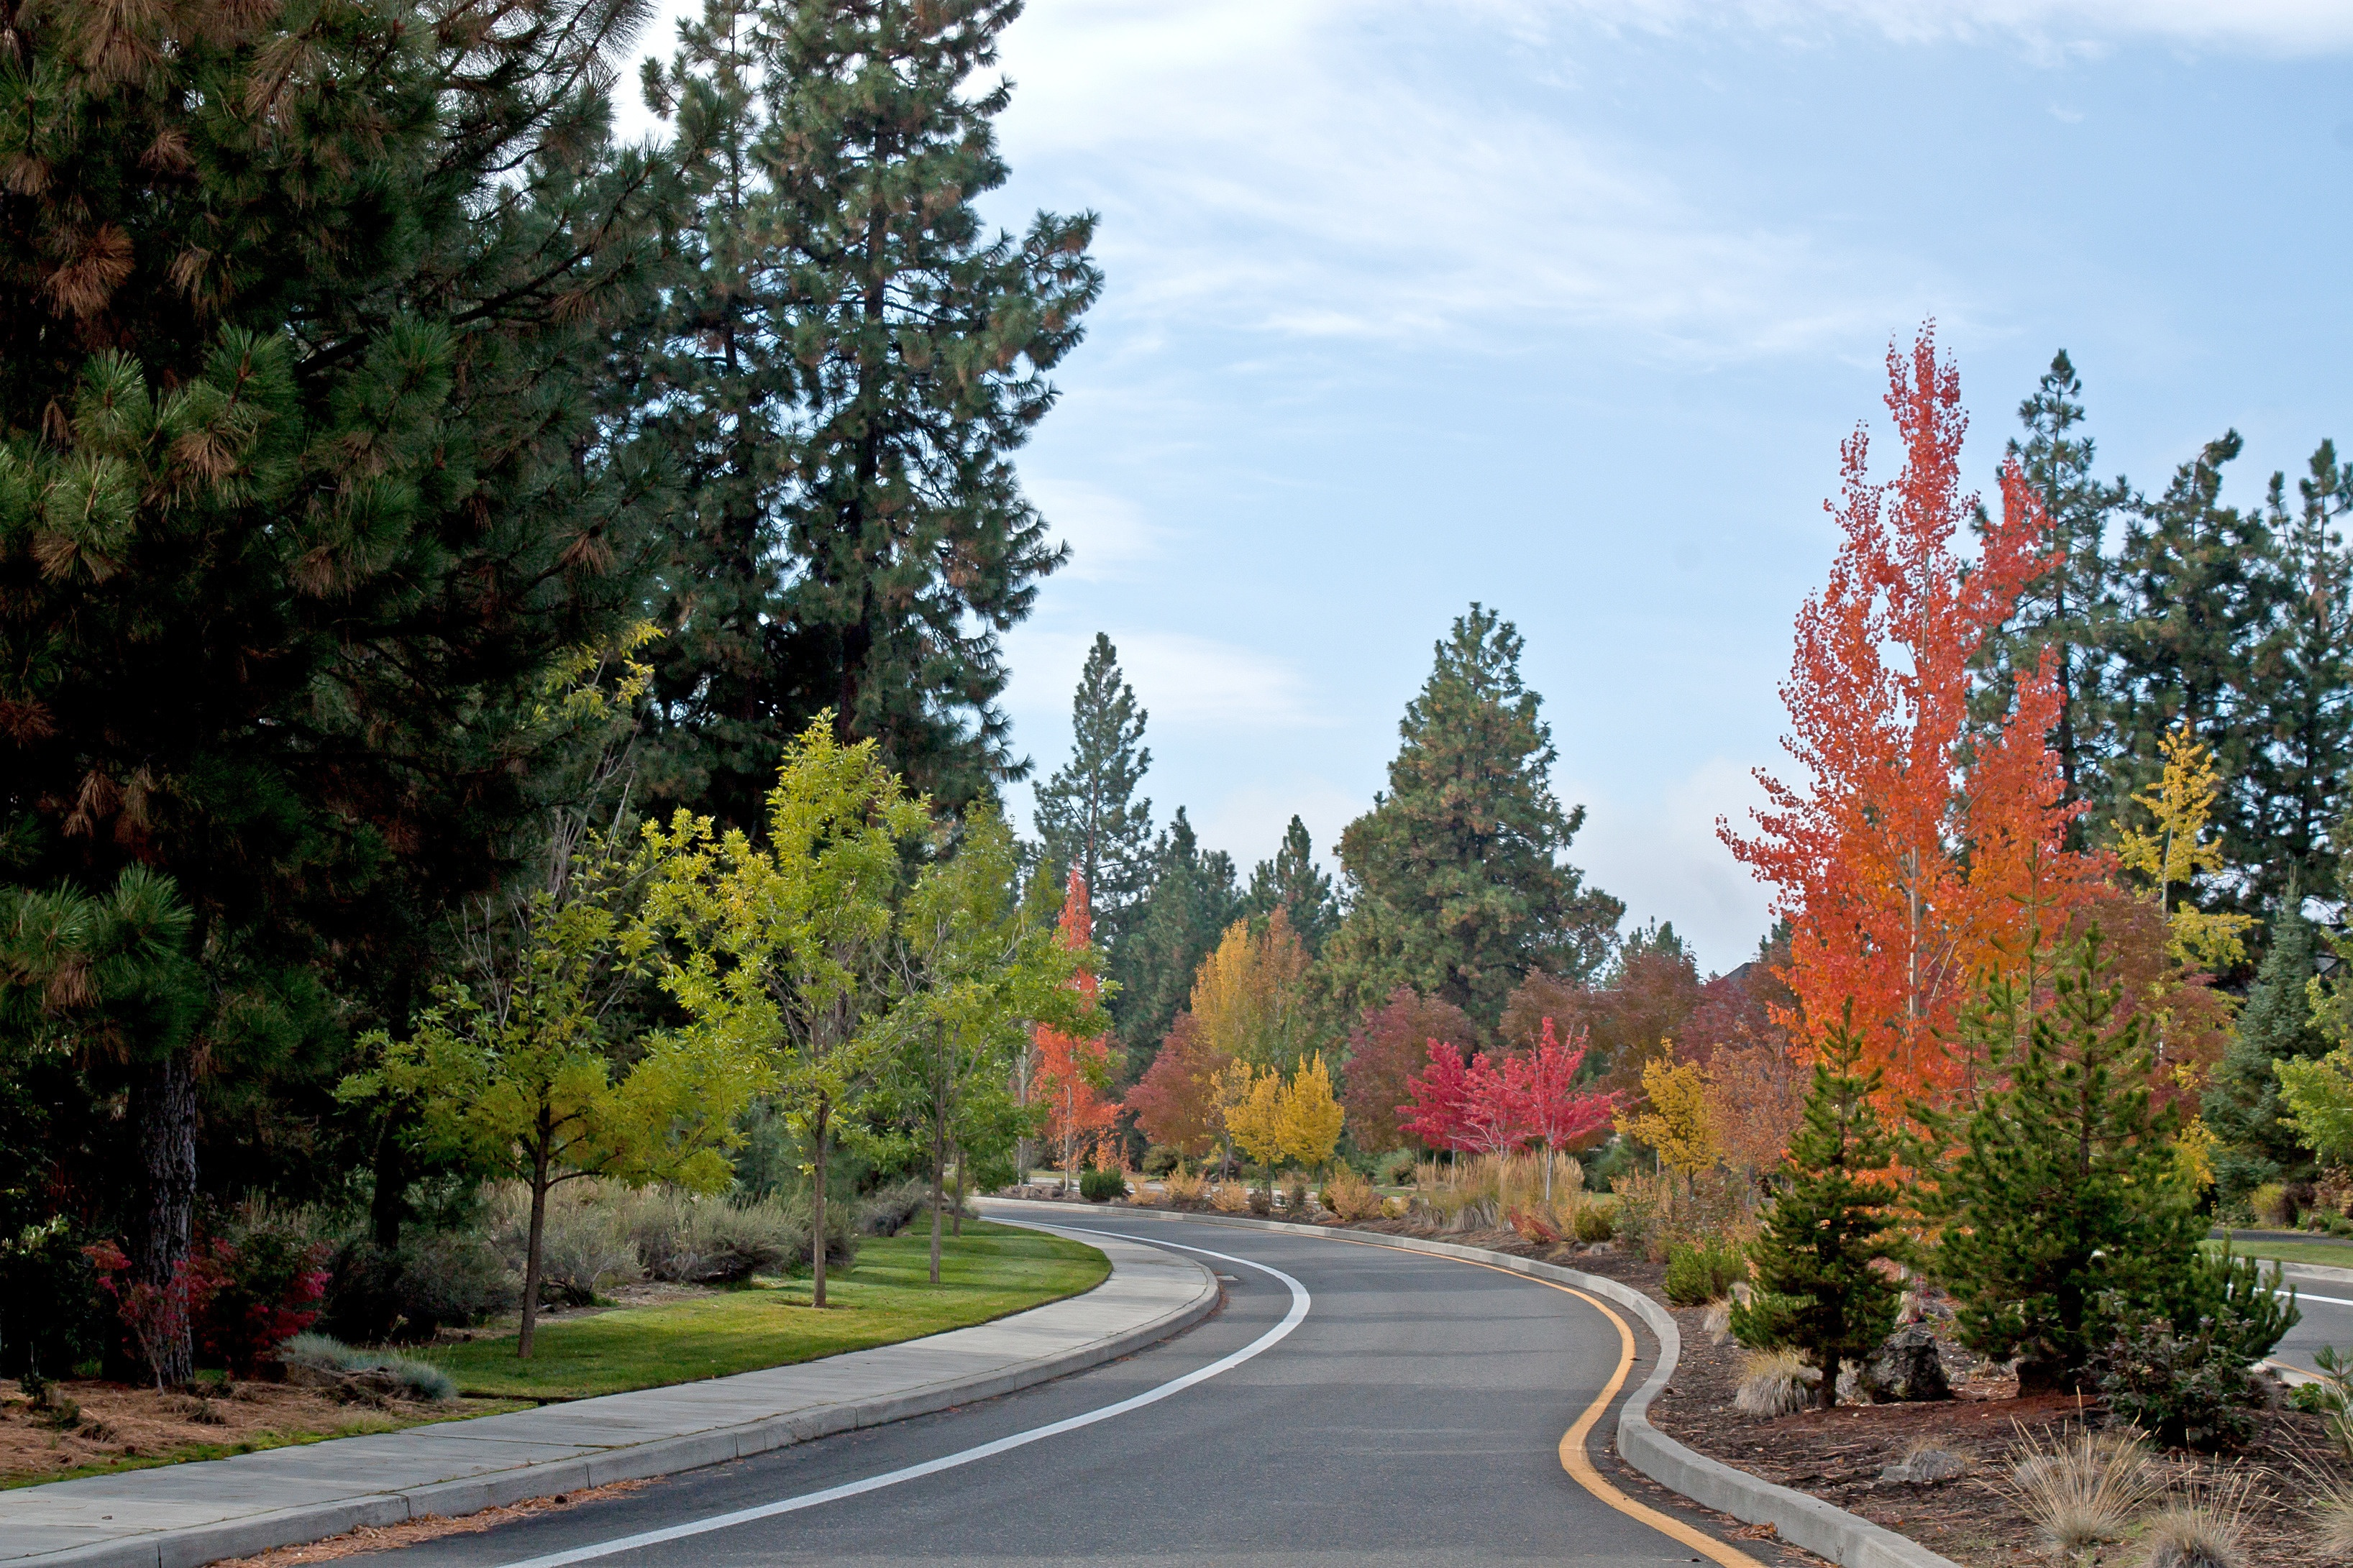 autumn-street-in-post-about-wildfire-prevention